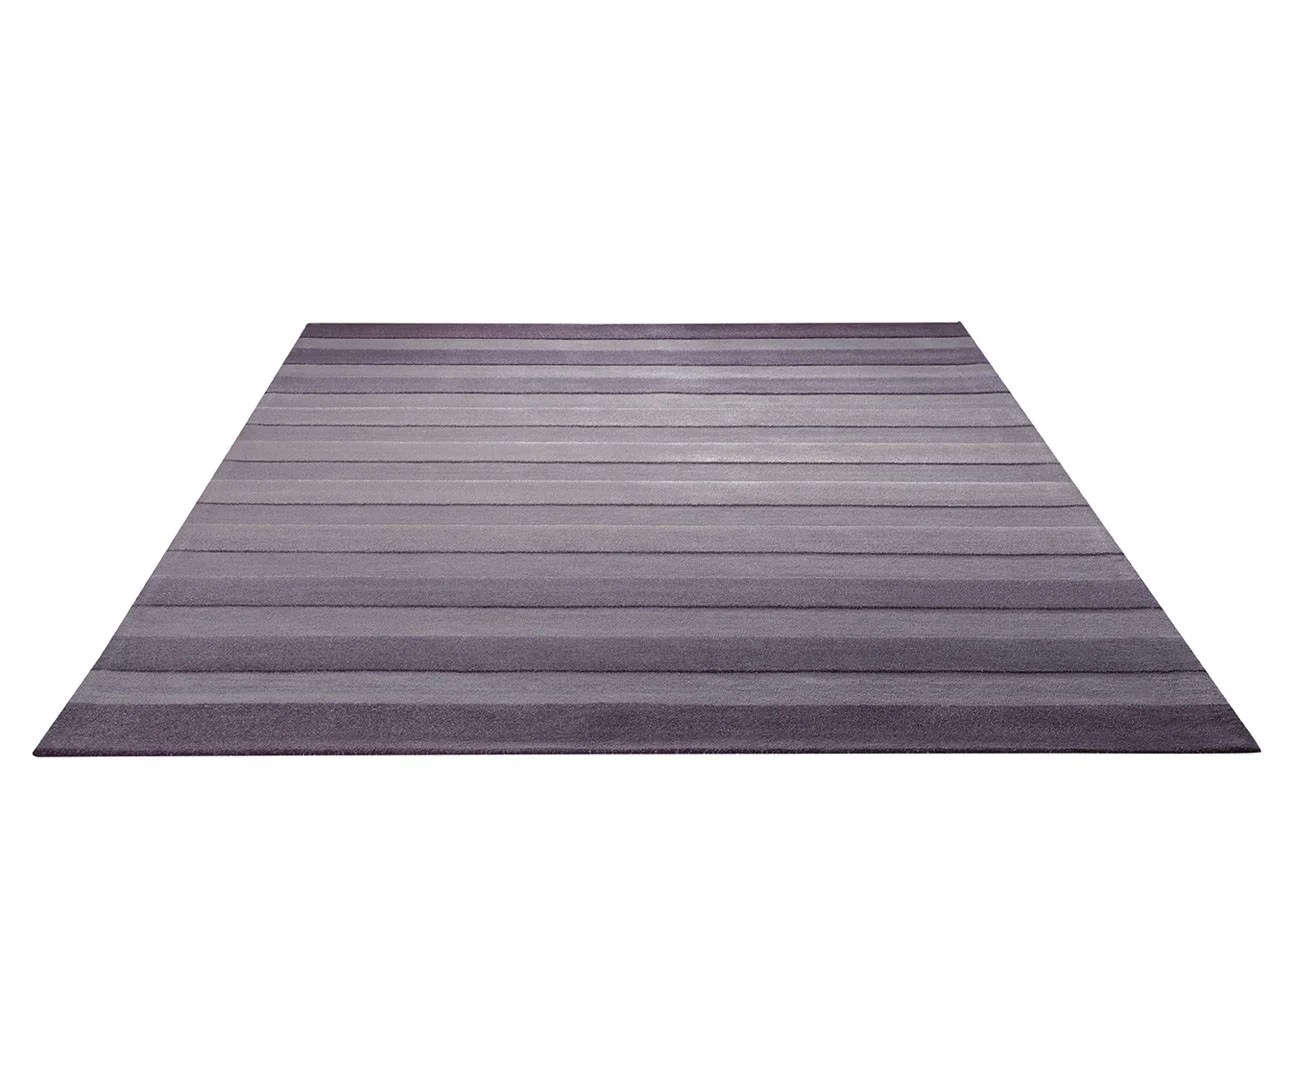 Tapis Prune Ikea Awesome Tapis Salon Gris Violet Ideas Awesome Interior